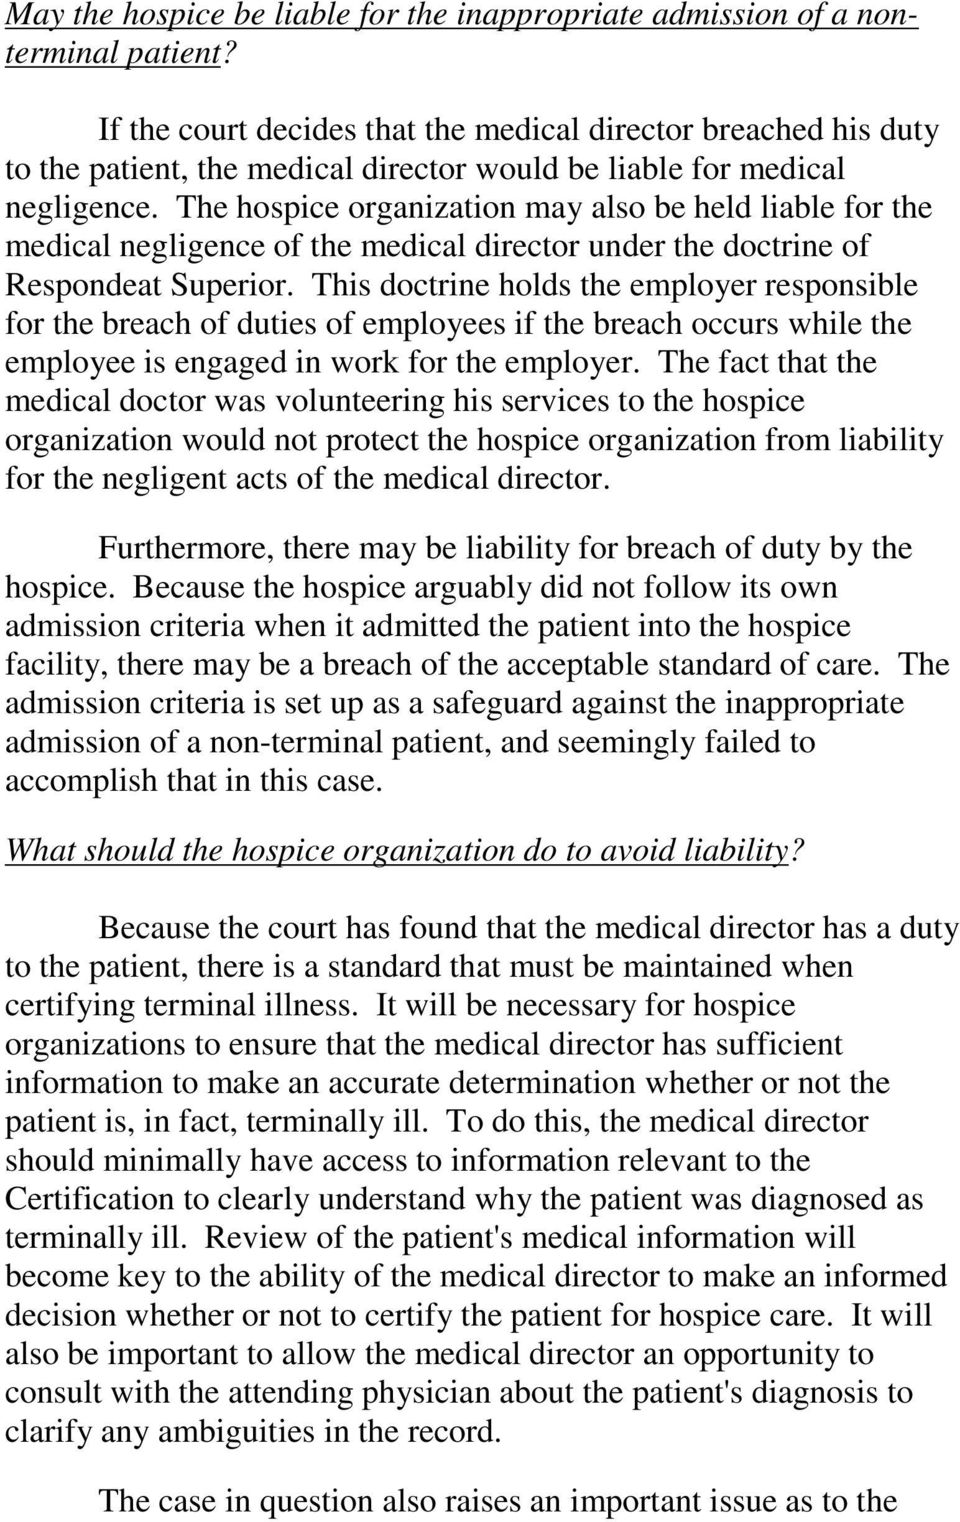 The hospice organization may also be held liable for the medical negligence of the medical director under the doctrine of Respondeat Superior.